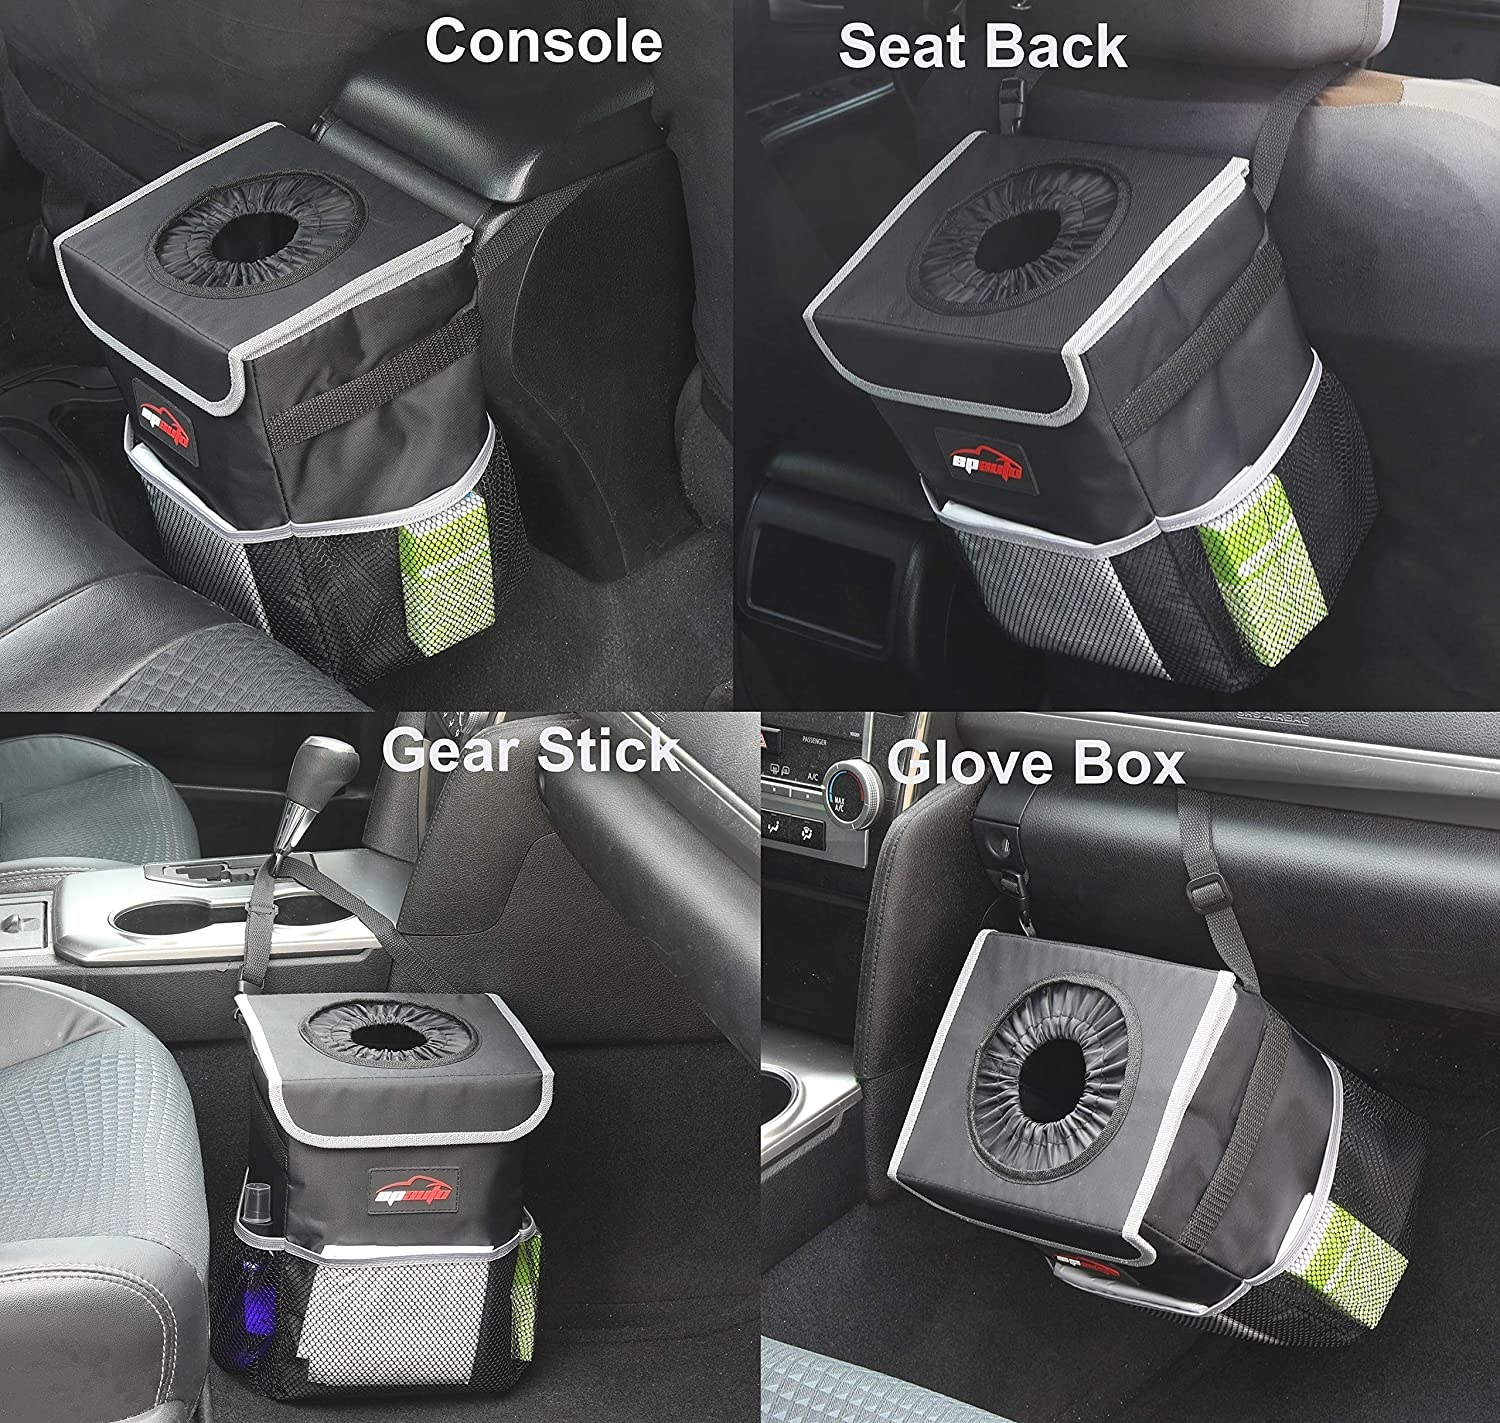 Four pictures showing a small fabric trash can hanging from a car console, a headrest, a gear stick and a glove box